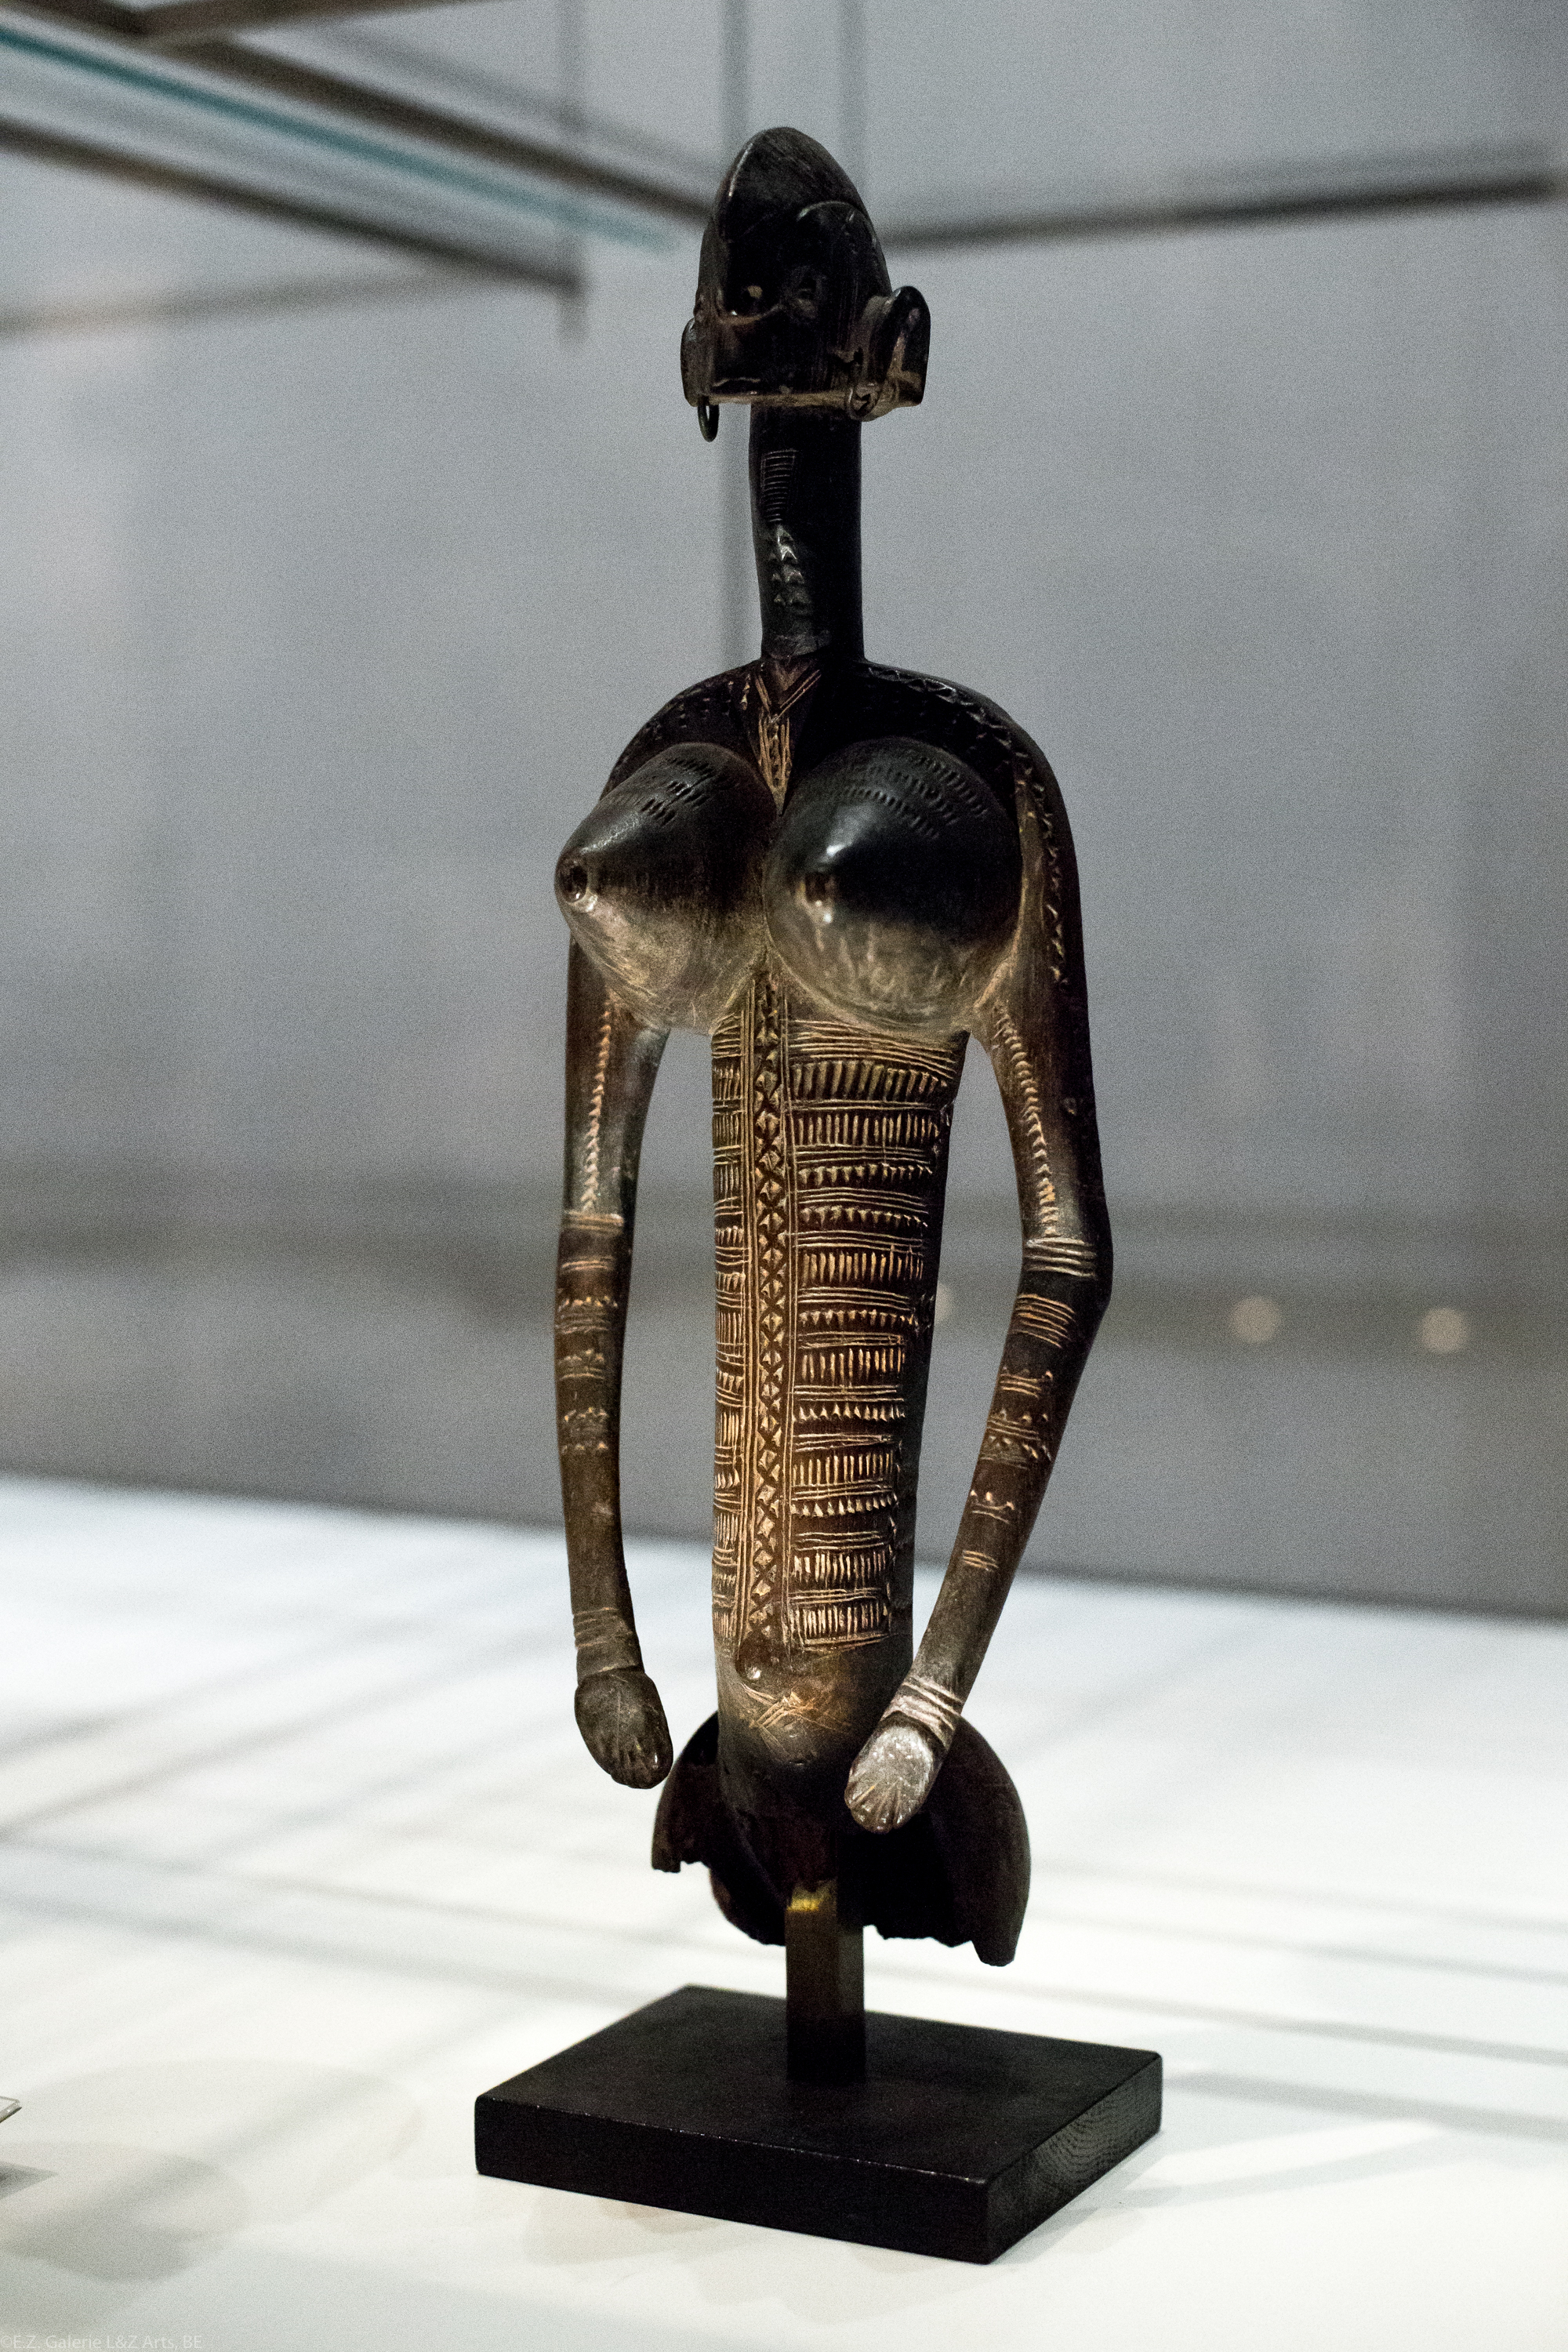 art-tribal-africain-londres-british-museum-sainsbury-galleries-bronze-benin-statue-masque-ivoire-africa-london-bini-edo-galerie-lz-arts-belgique-france-15.jpg